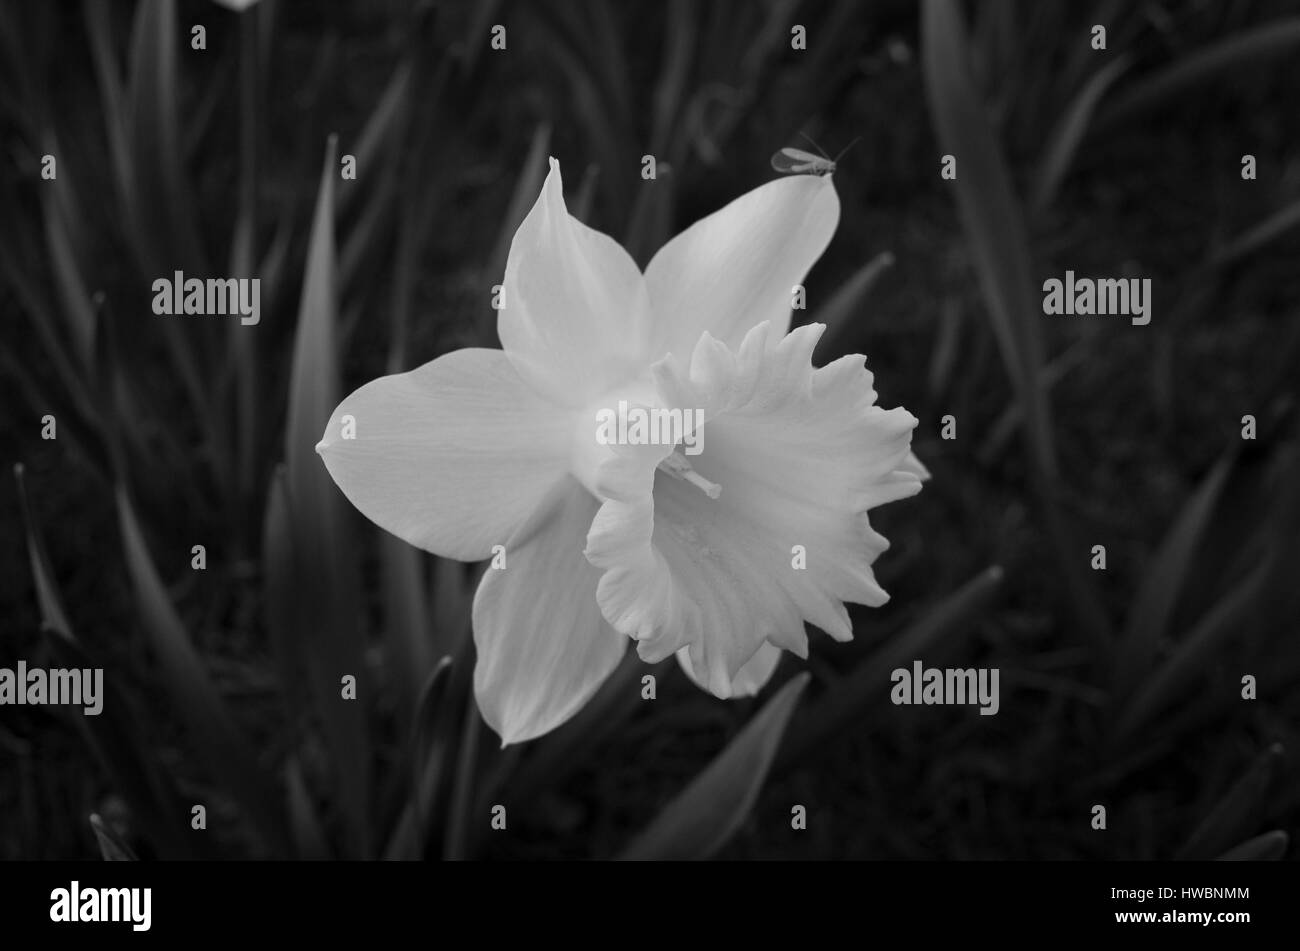 Beautiful Daffodil Flower In Black And White Nice Calm Poetic Photo